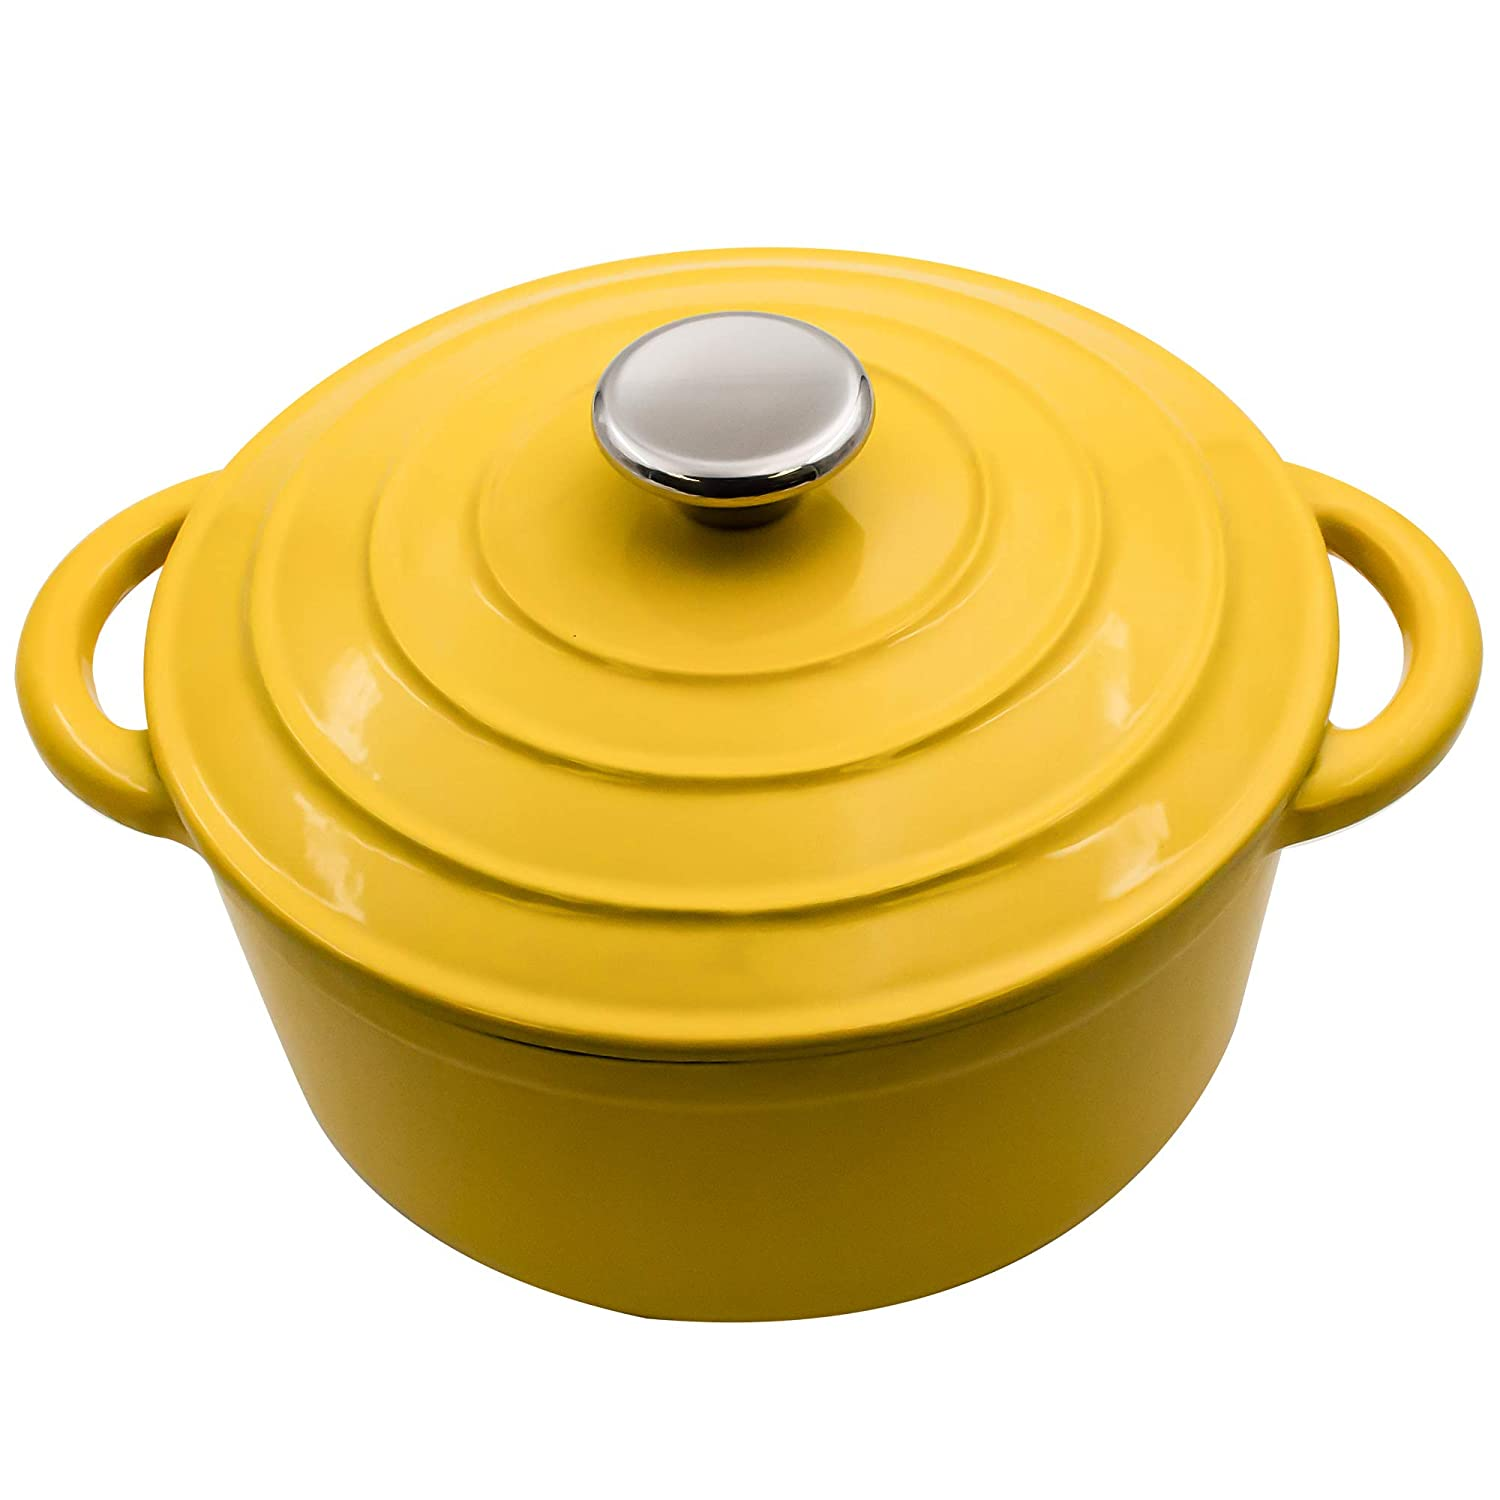 3-Quart Enameled Dutch Oven Yellow - Ceramic Strew Pots, Bread Baking Vessels